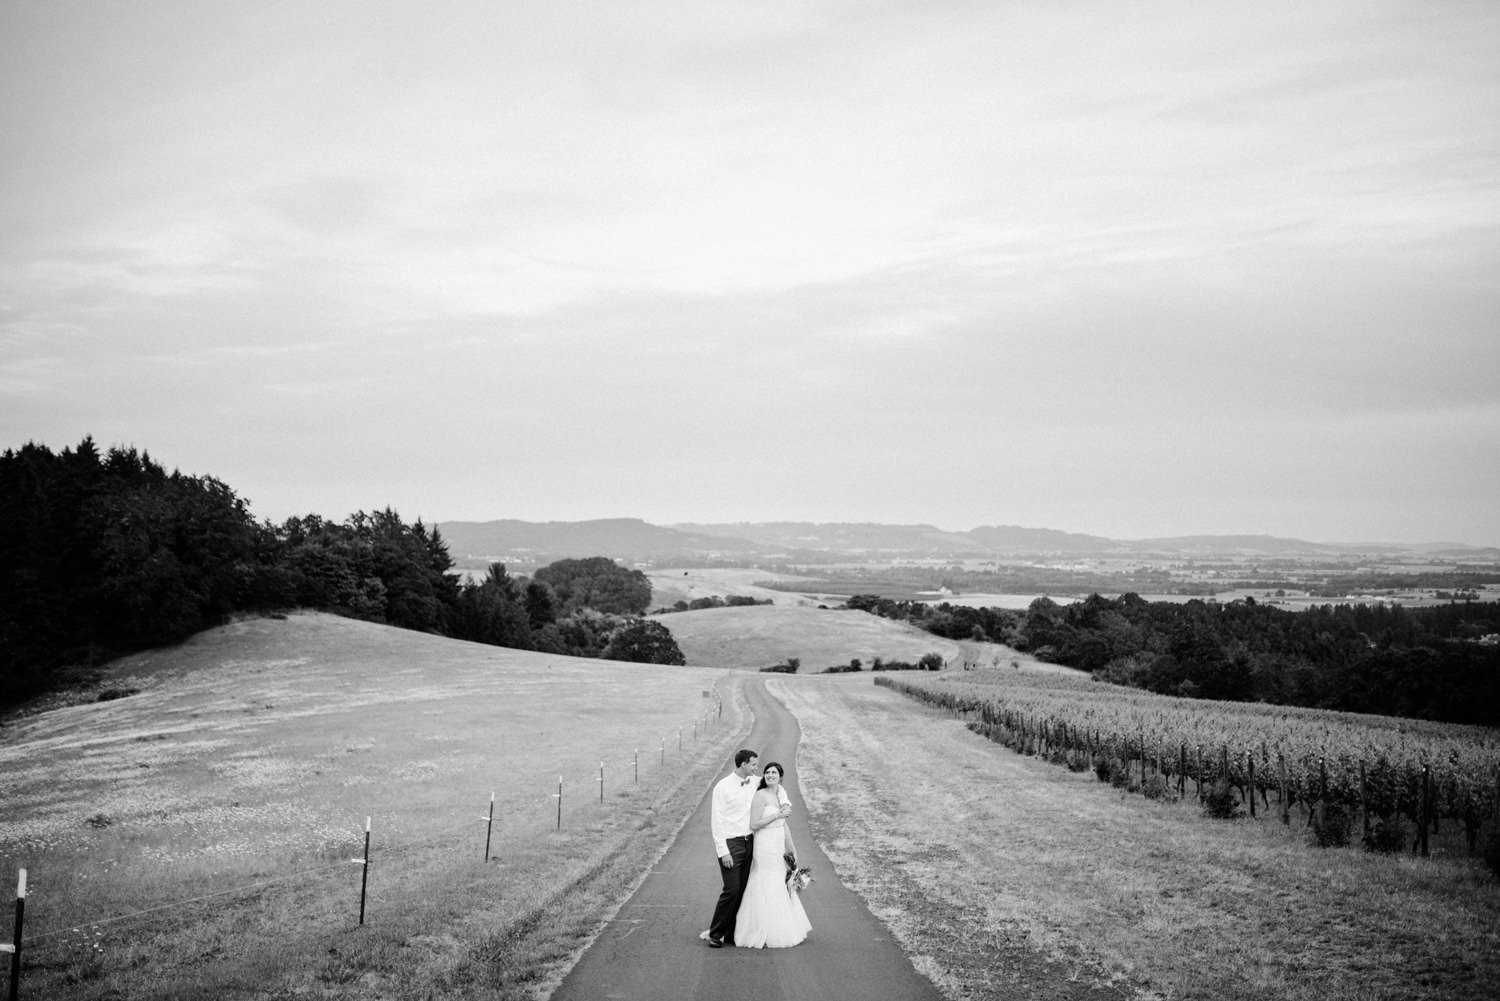 ryan-flynn-best-wedding-photography-2015-seattle-film-photographer-0082.JPG